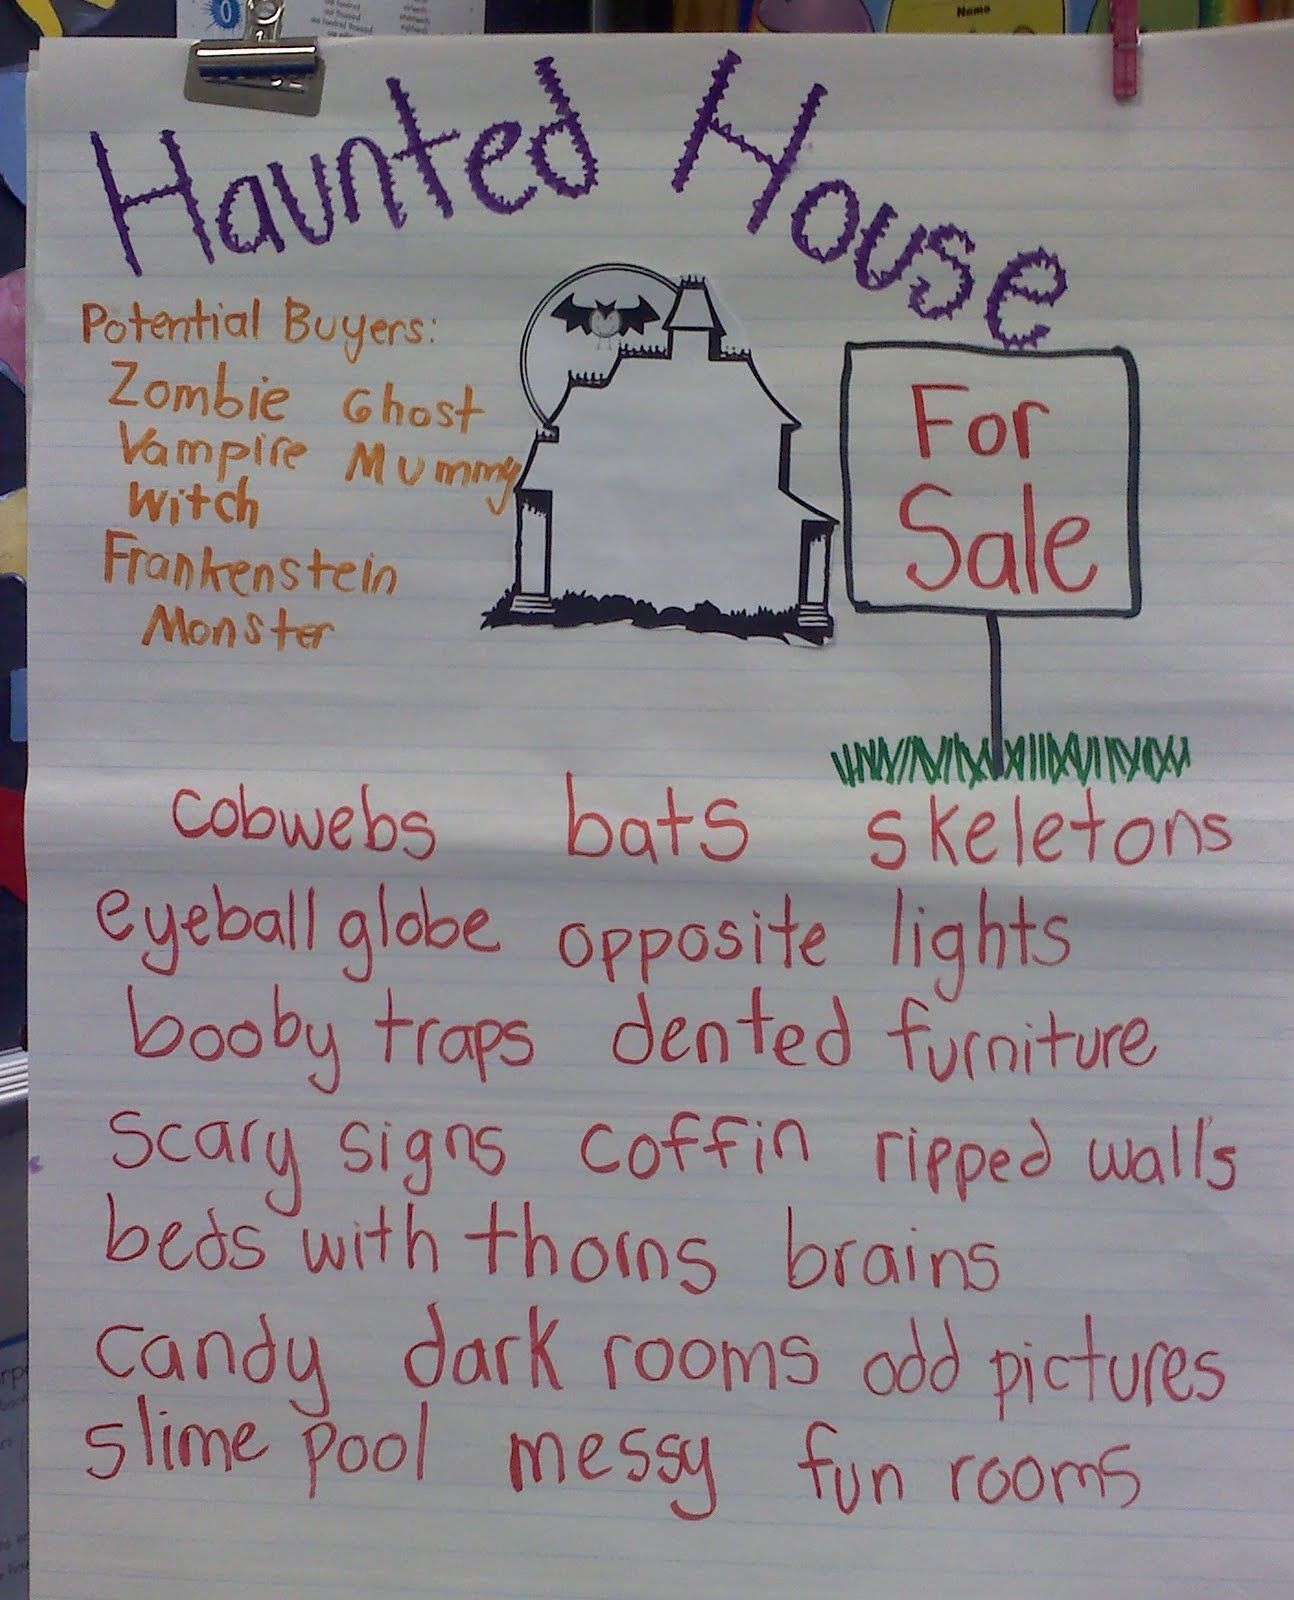 This Teacher Used My Haunted House For Sale Writing Packet With Her Class And Shared Her Chart